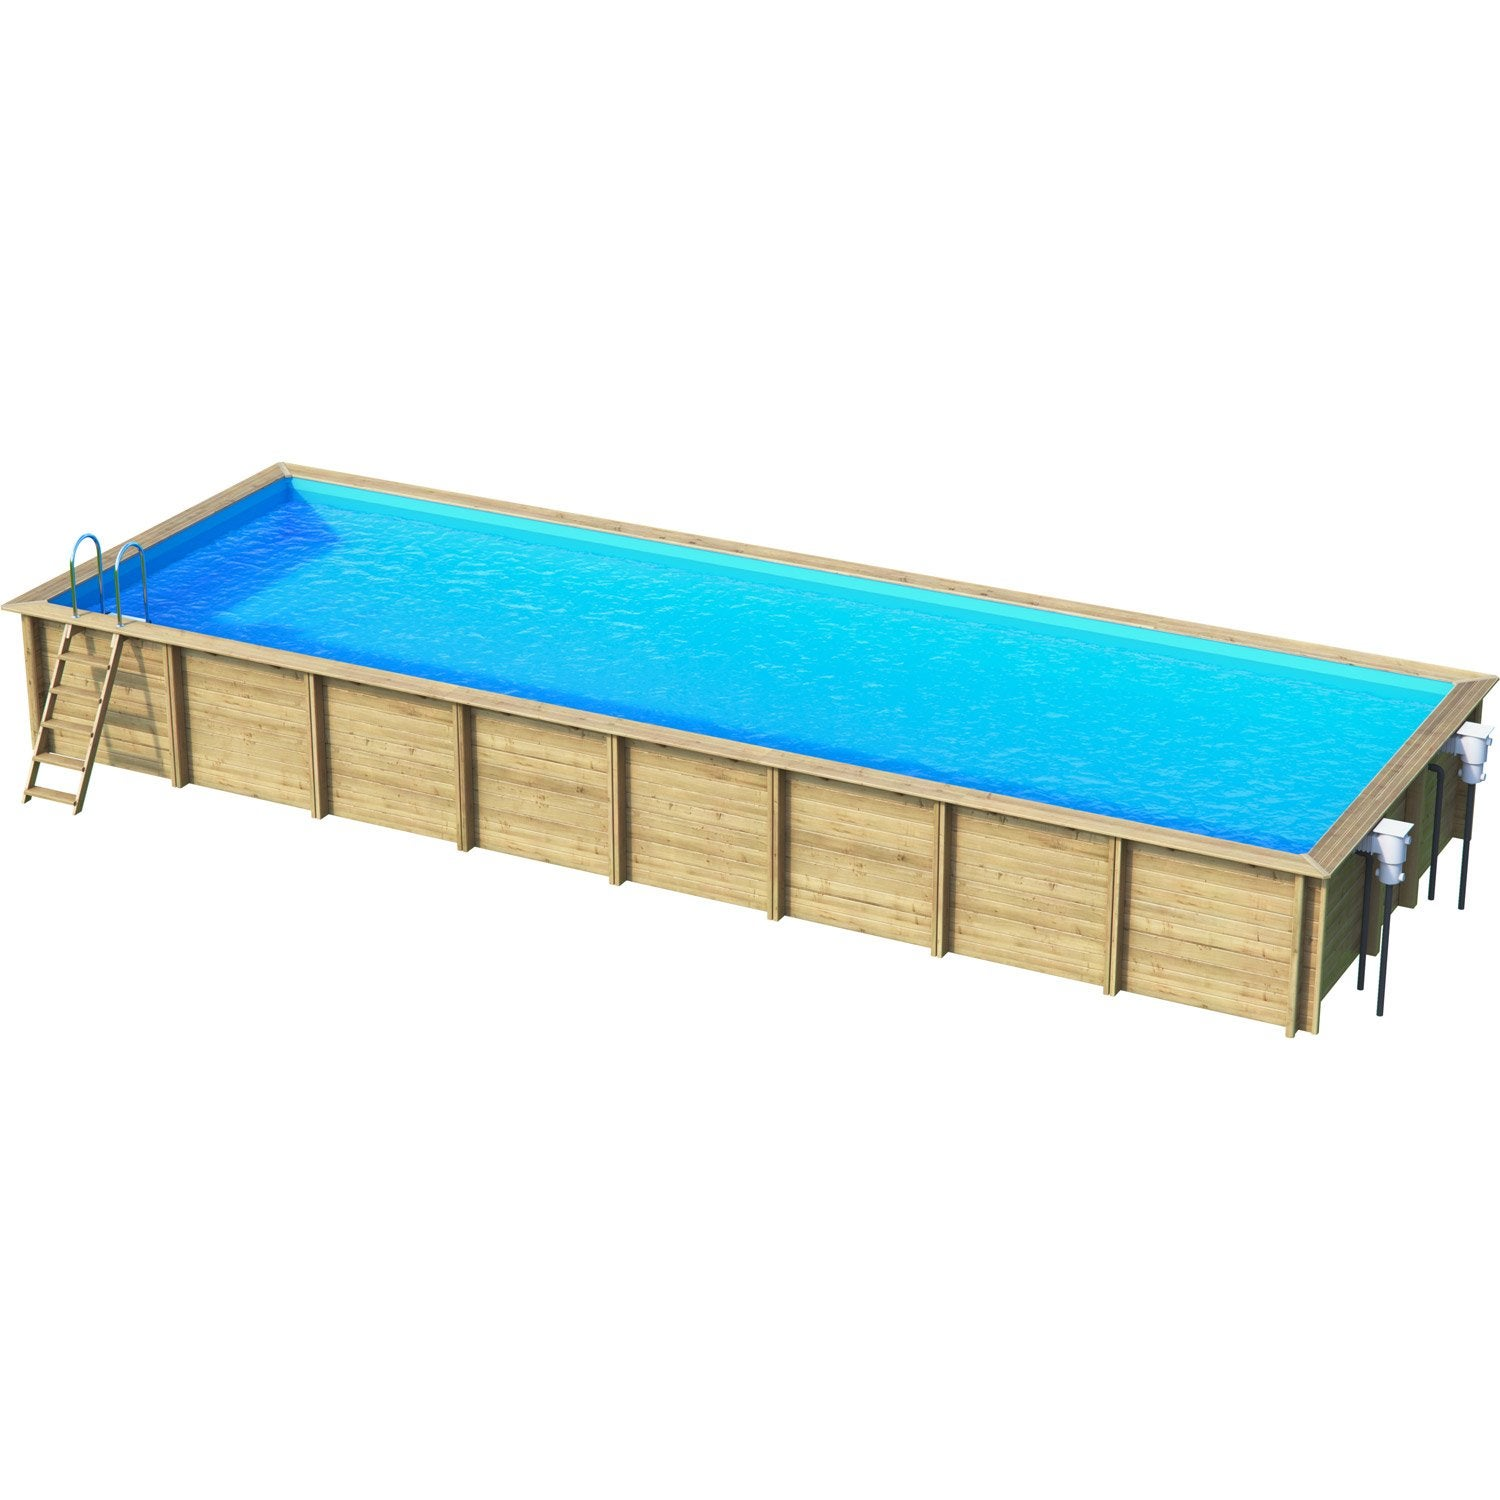 Piscine hors sol bois weva x l 4 5 x h m for Piscine hors sol legislation